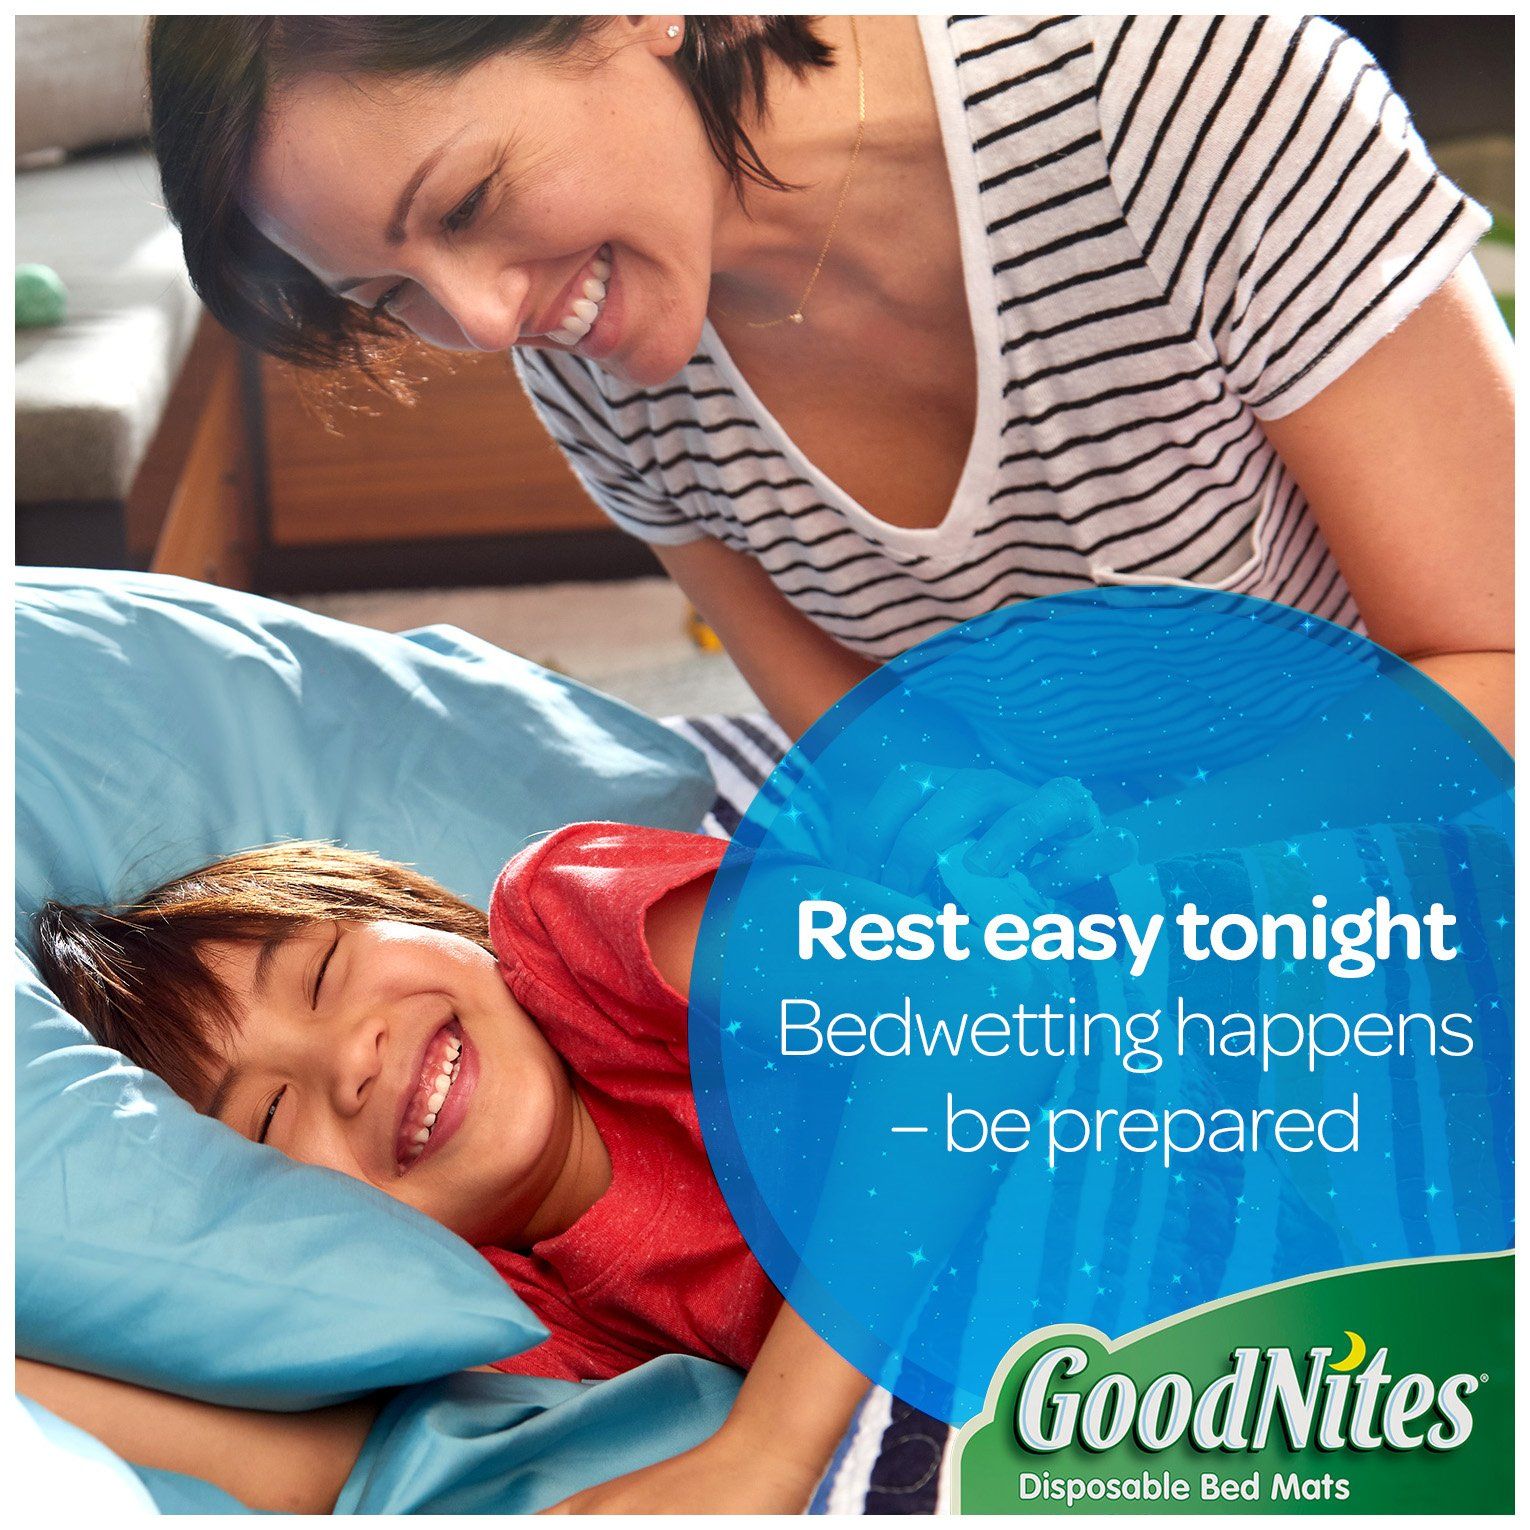 GoodNites Disposable Bed Mats, 36 Count by GoodNites (Image #4)